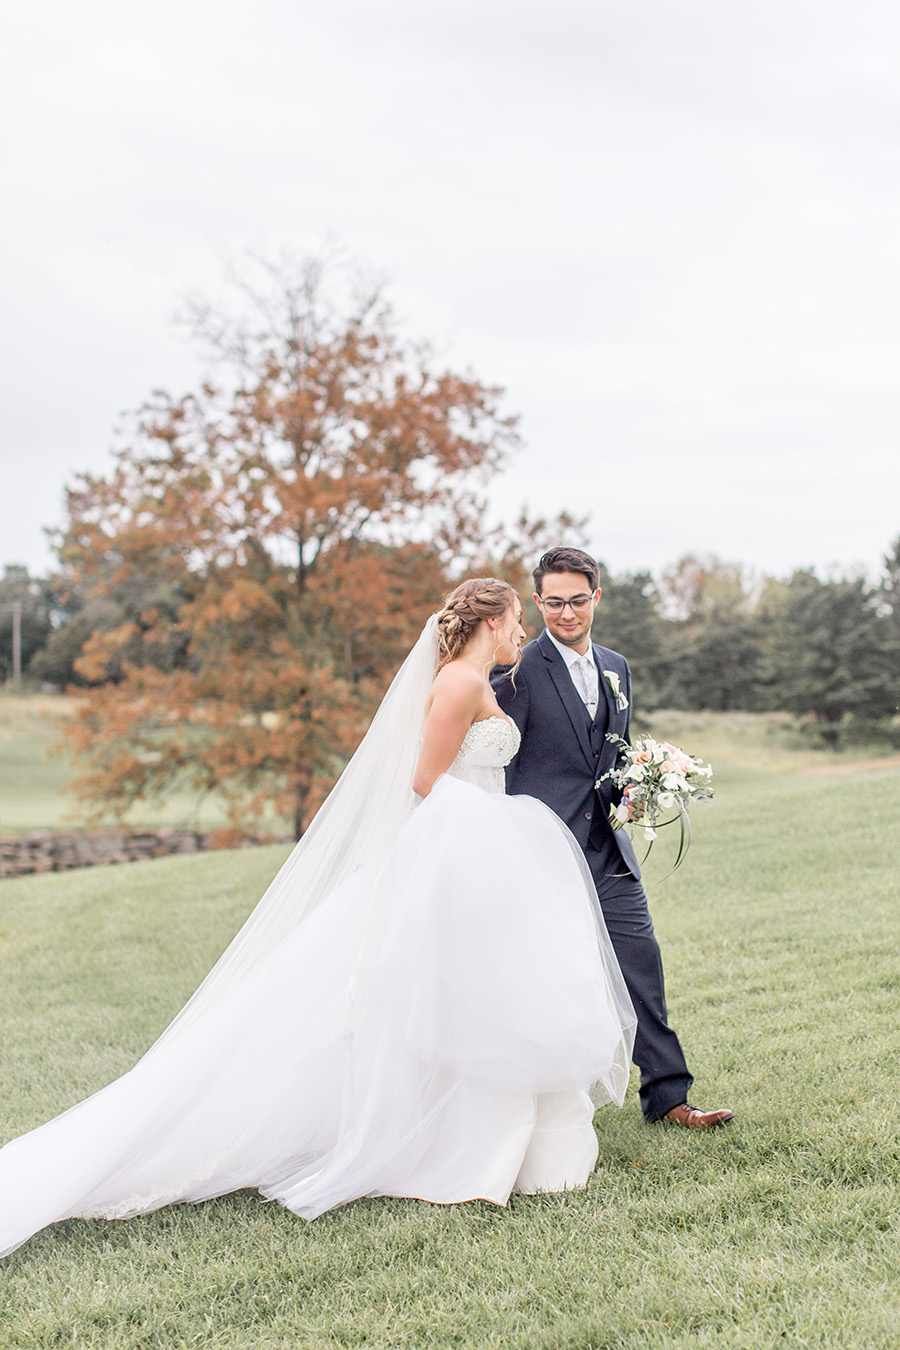 september wedding at philly area golf course